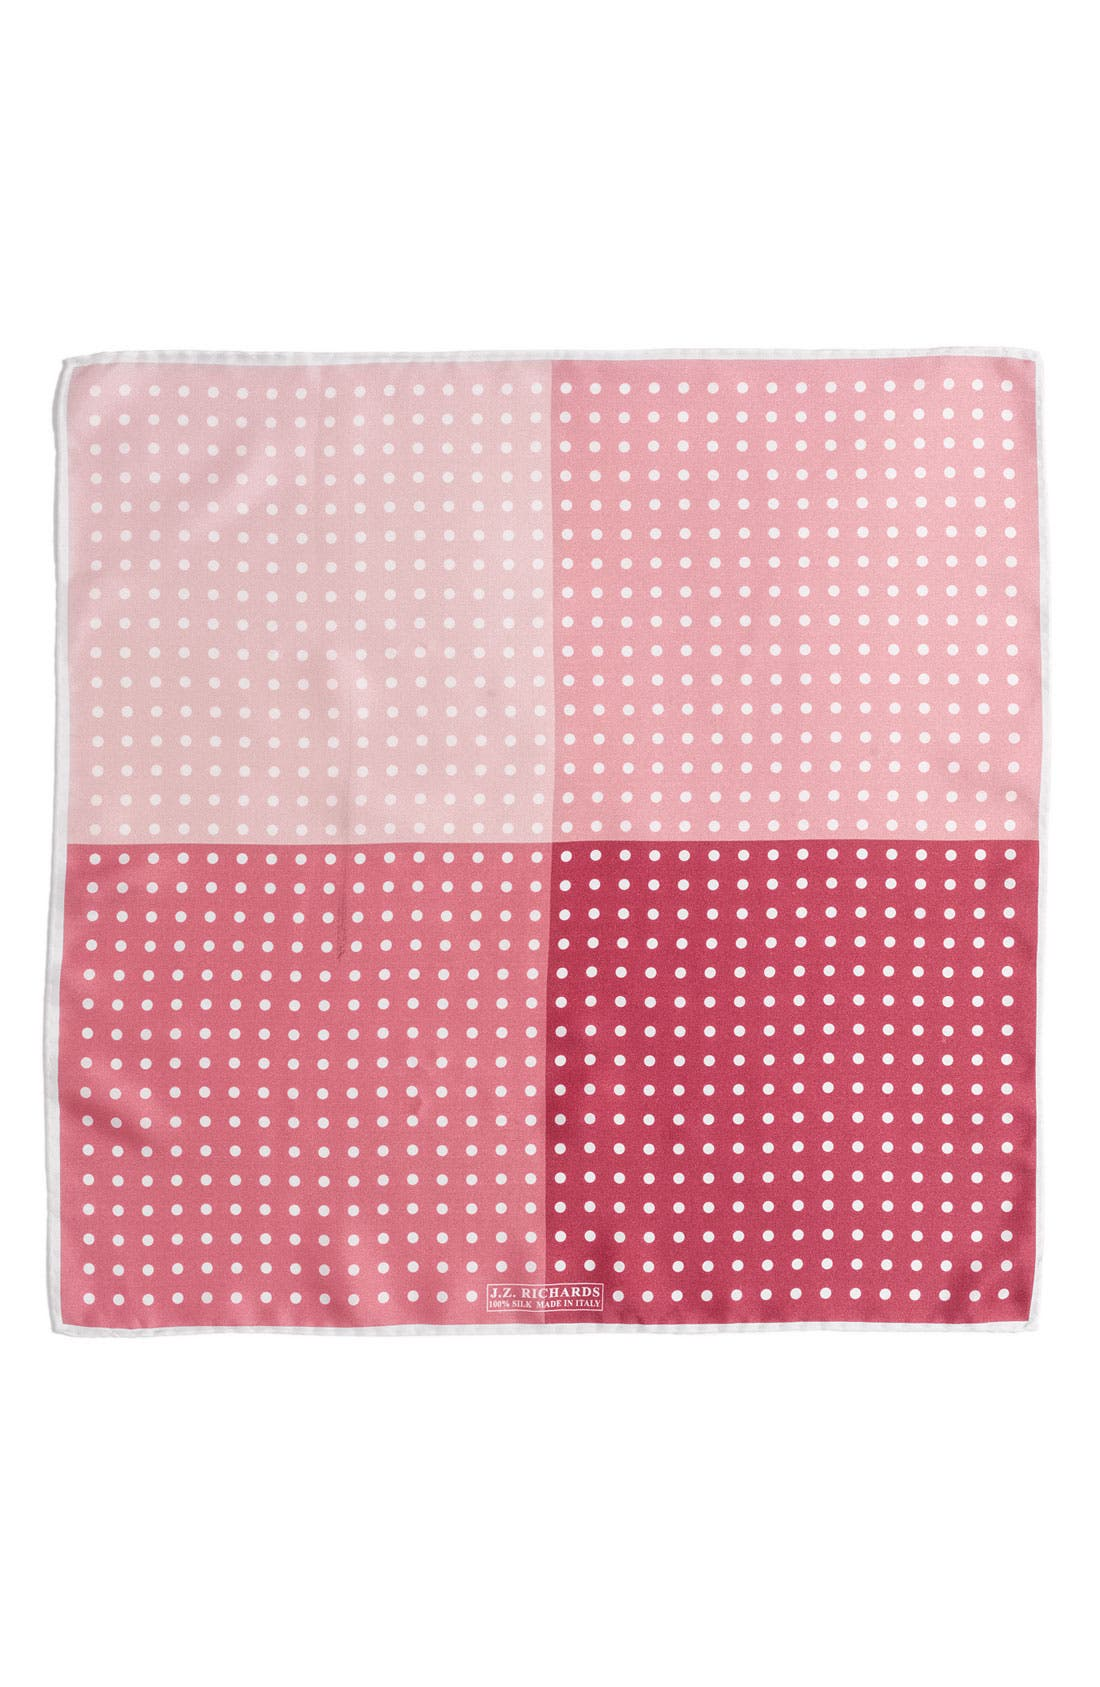 Alternate Image 1 Selected - J.Z. Richards Polka Dot Pocket Square